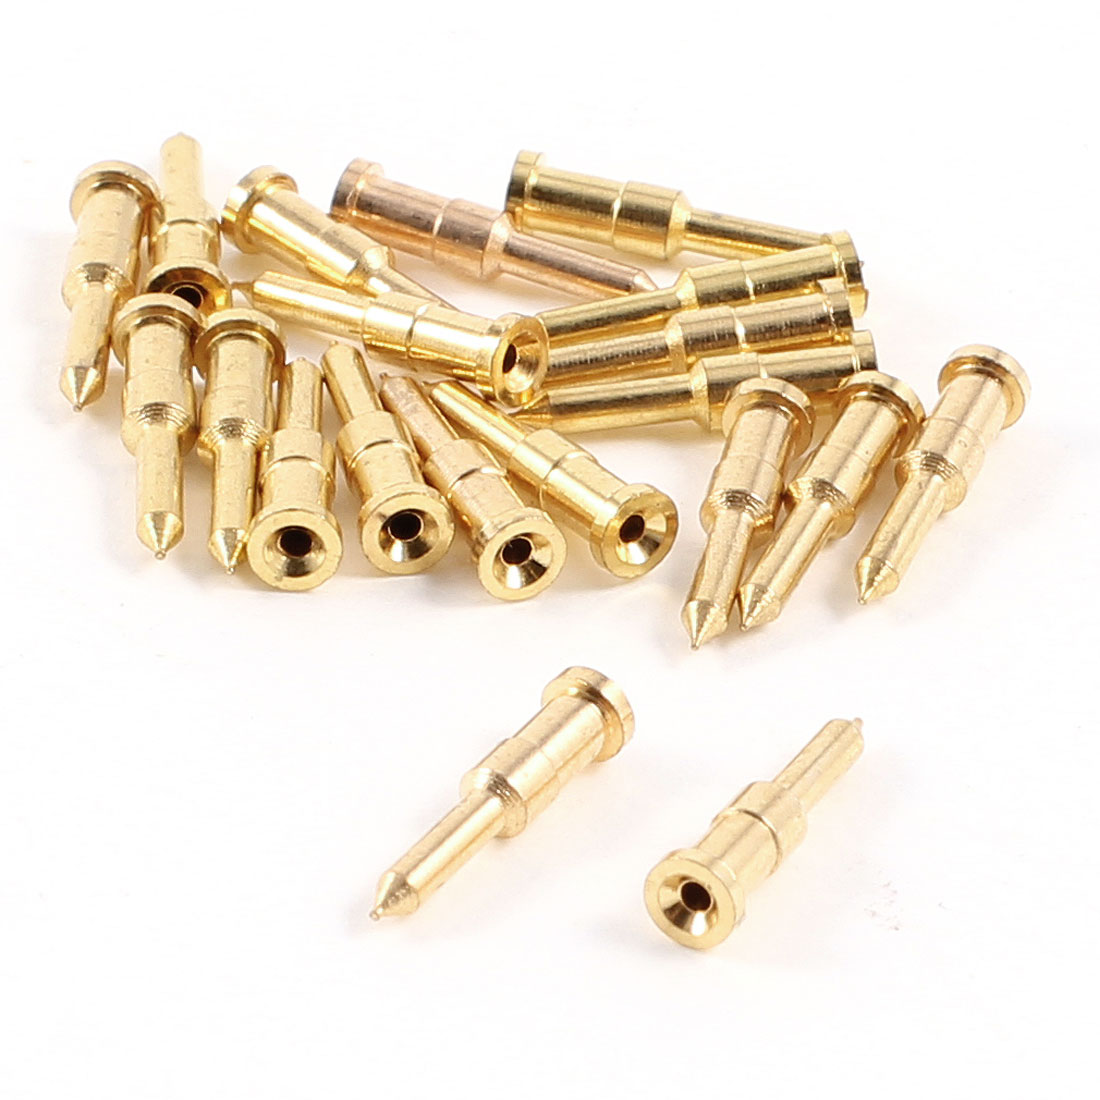 20 Pcs Gold Plated Alloy Male Crimp Center Pin for 75-5 BNC Q9 Connector